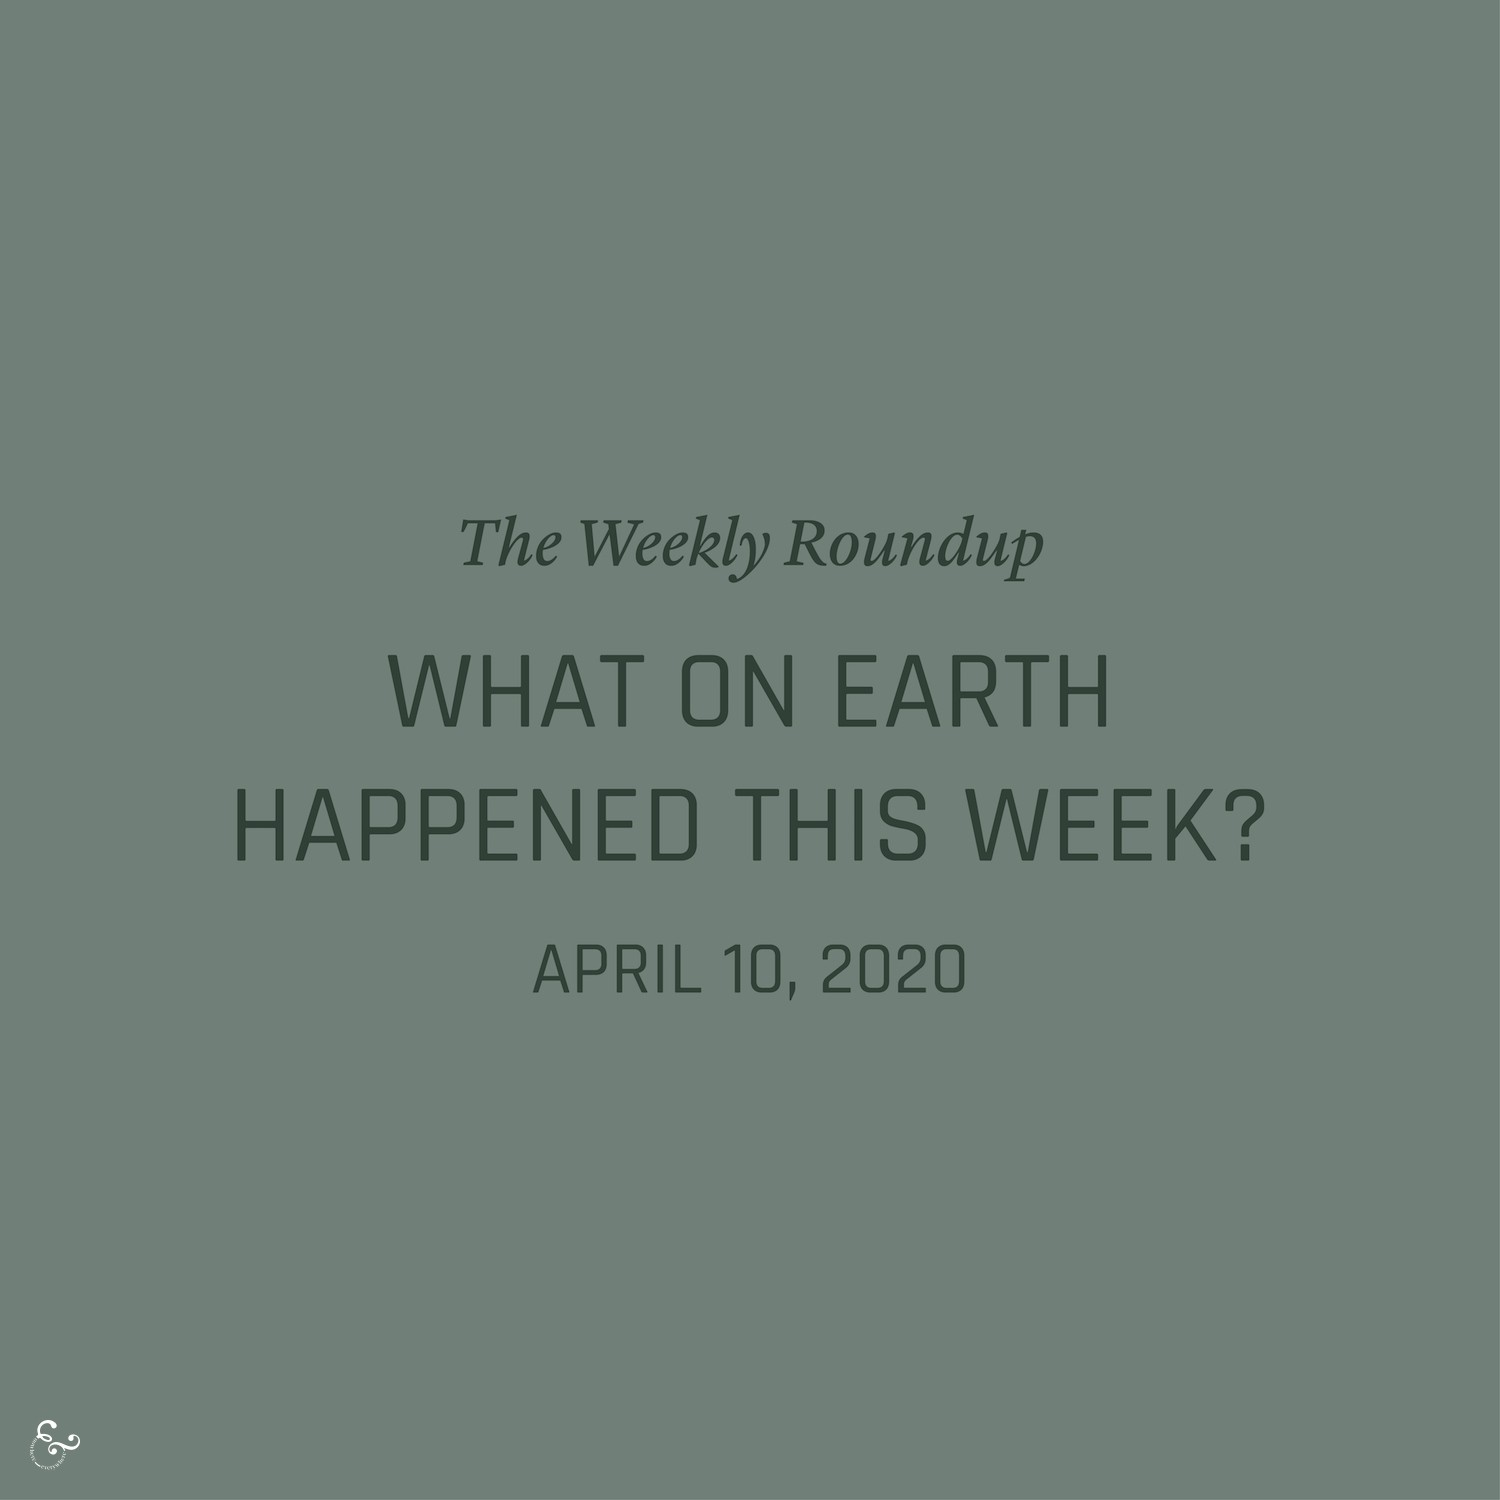 What on earth happened this week? Good Positive Happy Environment Eco Green News of the Week - Nowhere & Everywhere Good News Stories 2020